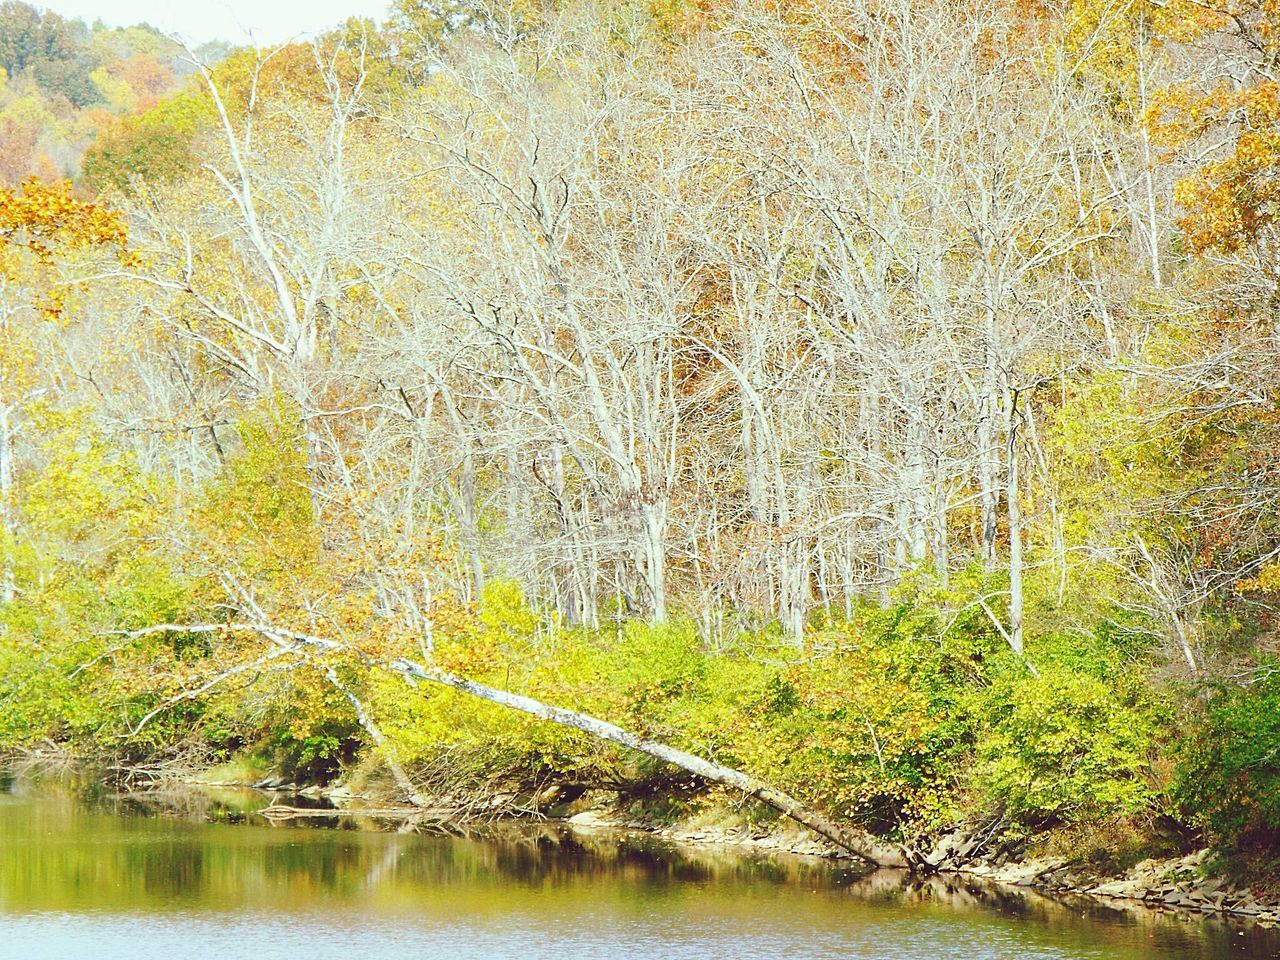 forest, nature, tranquil scene, beauty in nature, tree, river, tranquility, outdoors, water, no people, day, scenics, bare tree, leaf, branch